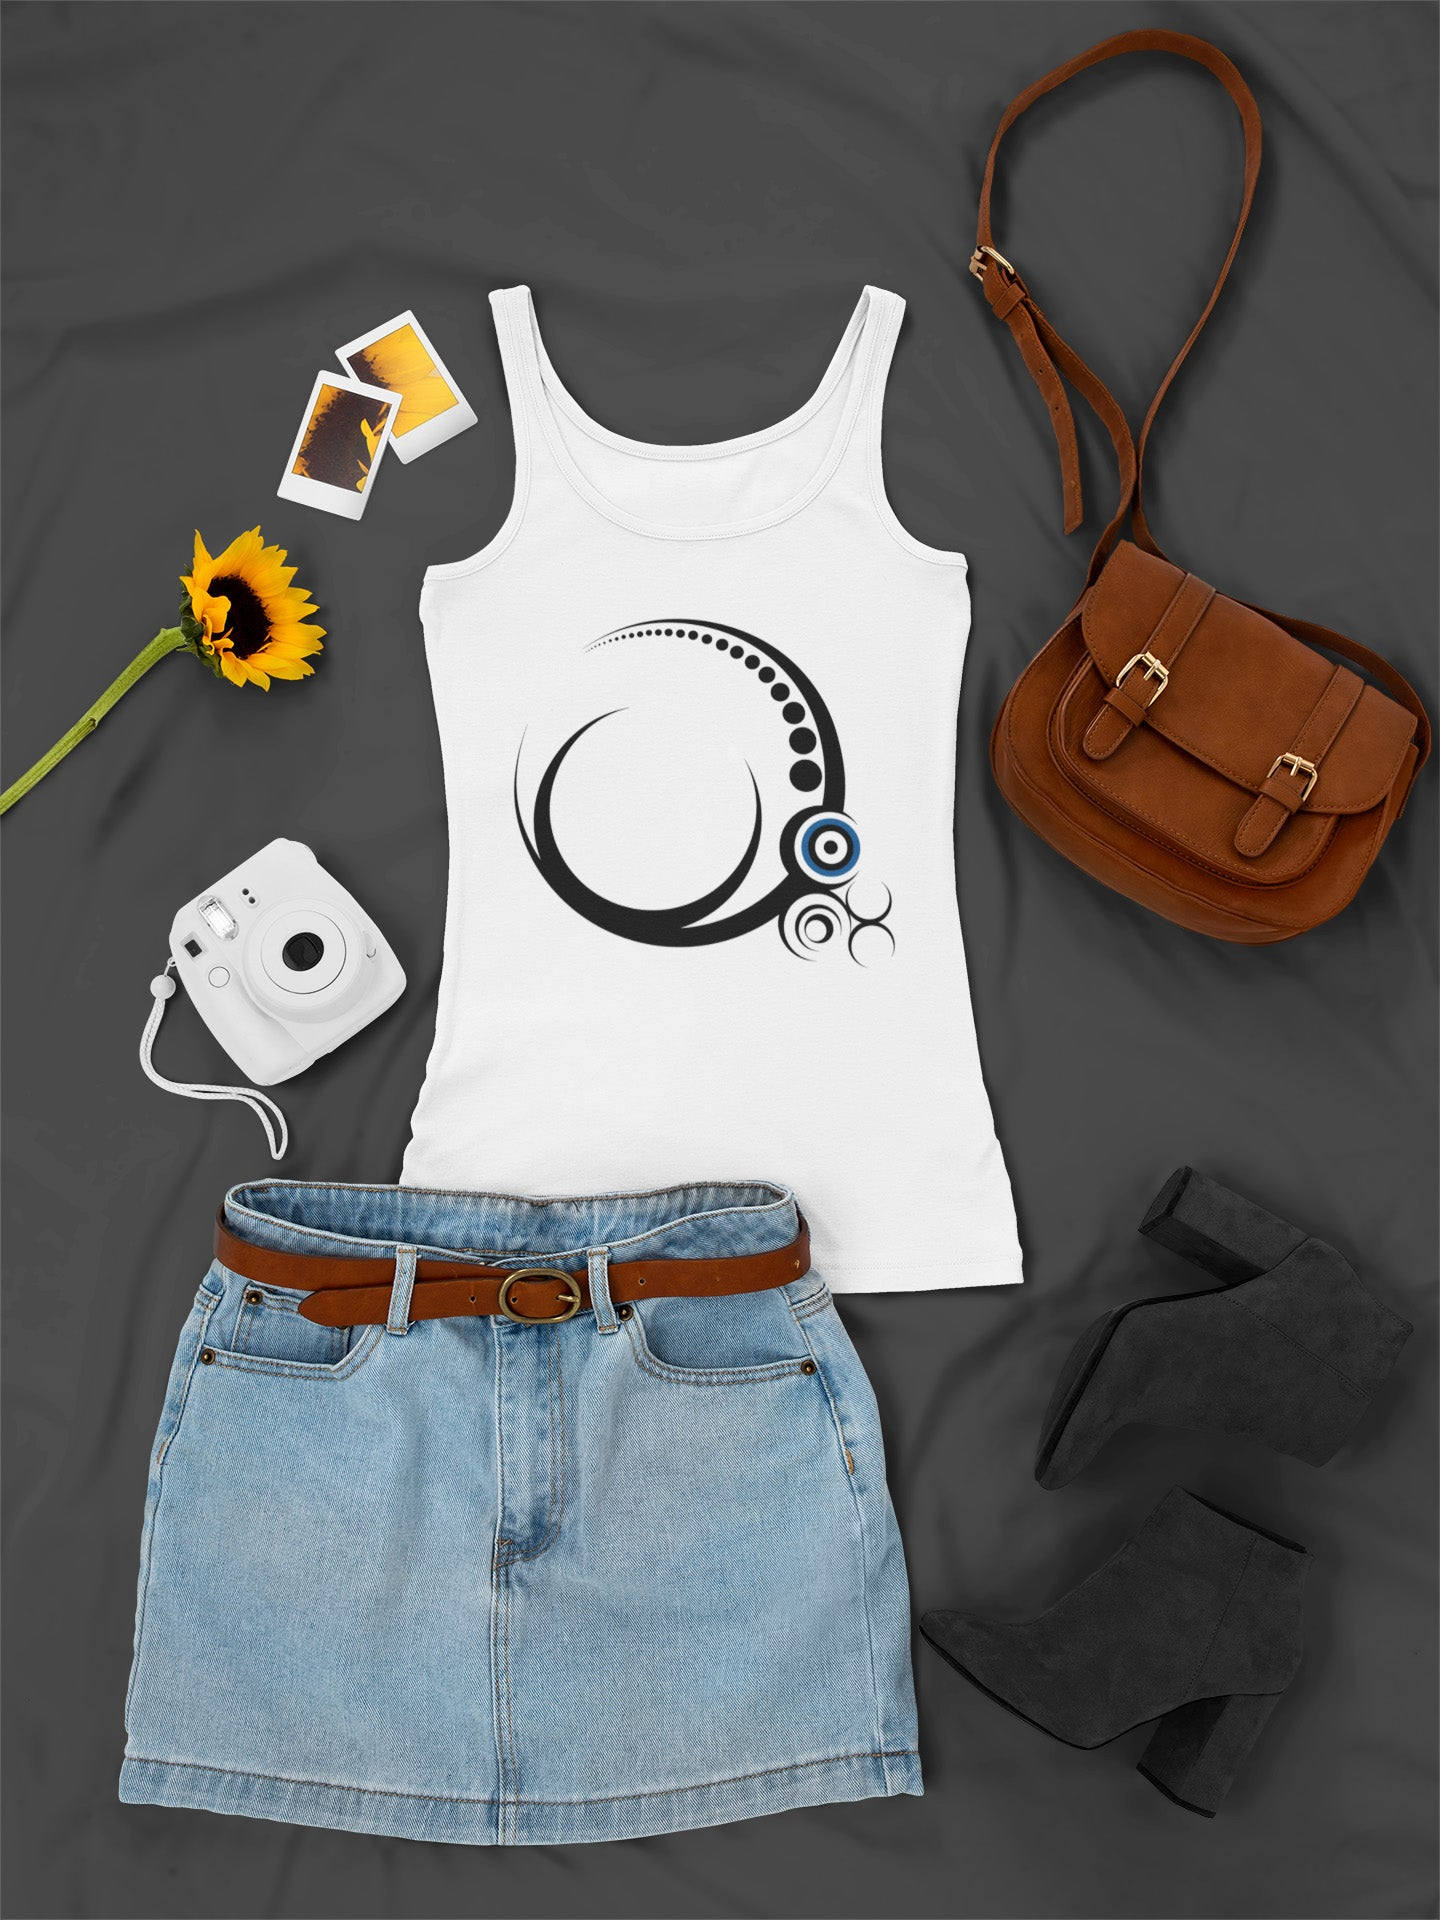 The Dark Moon 2 - Ladies Tank Top